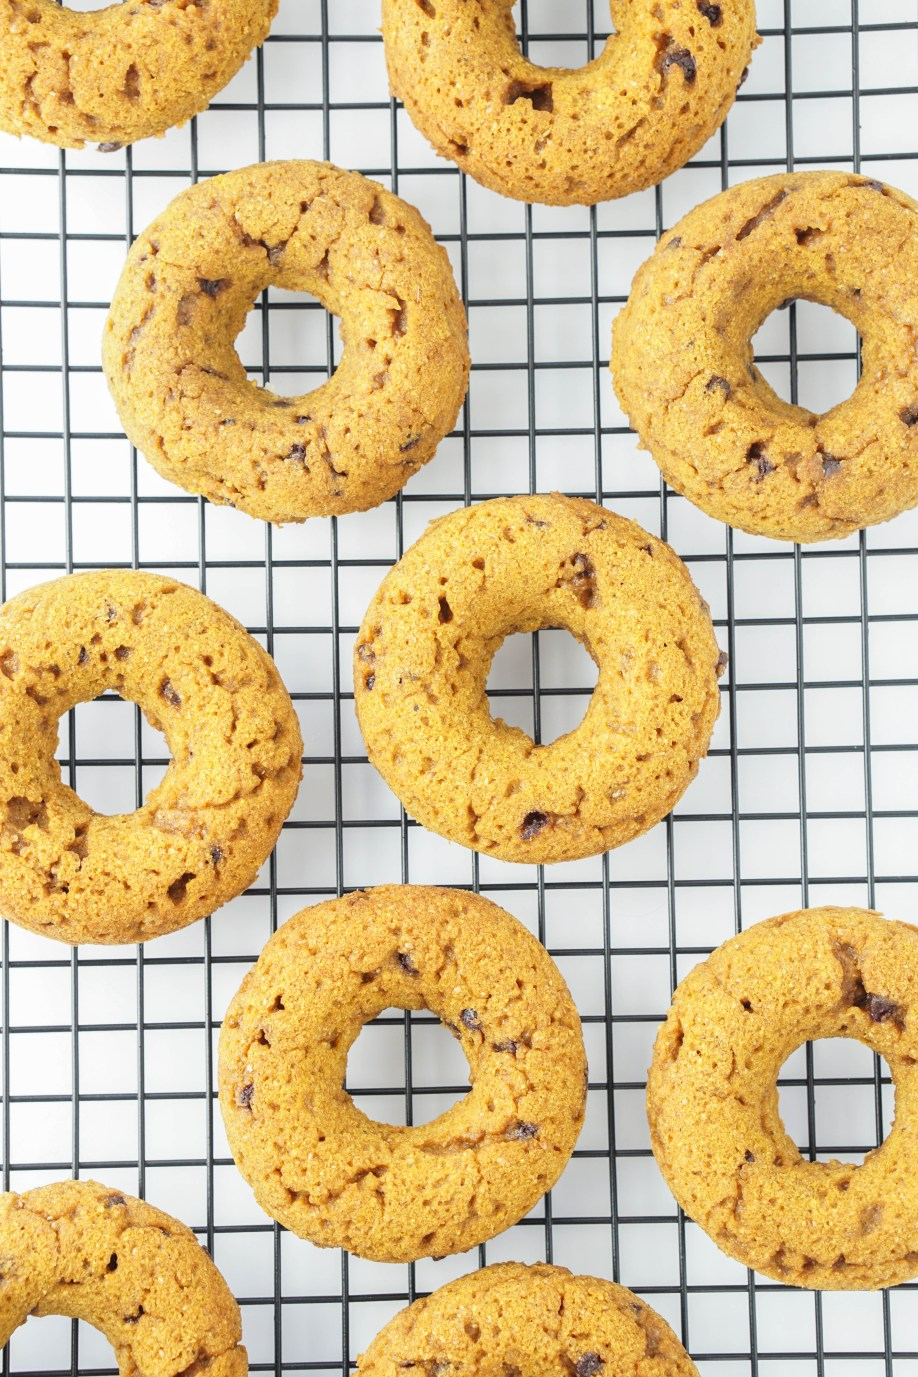 Healthy Pumpkin Chocolate Chip Baked Donuts! with caramel glaze! #coconutoil #wholewheat #bakeddonuts #recipe | www.wakeuptowaffles.com